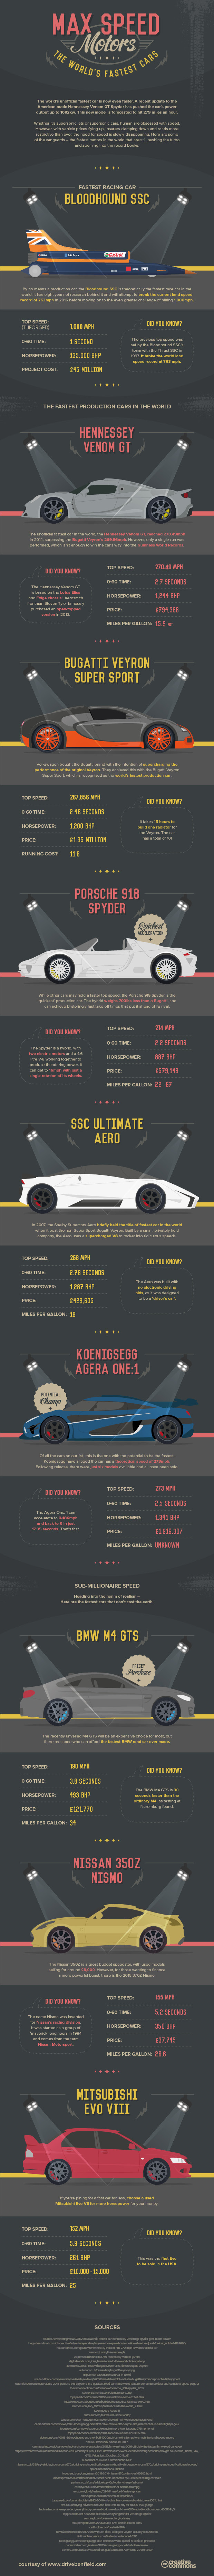 Benfield Motors - the worlds fastest cars-1